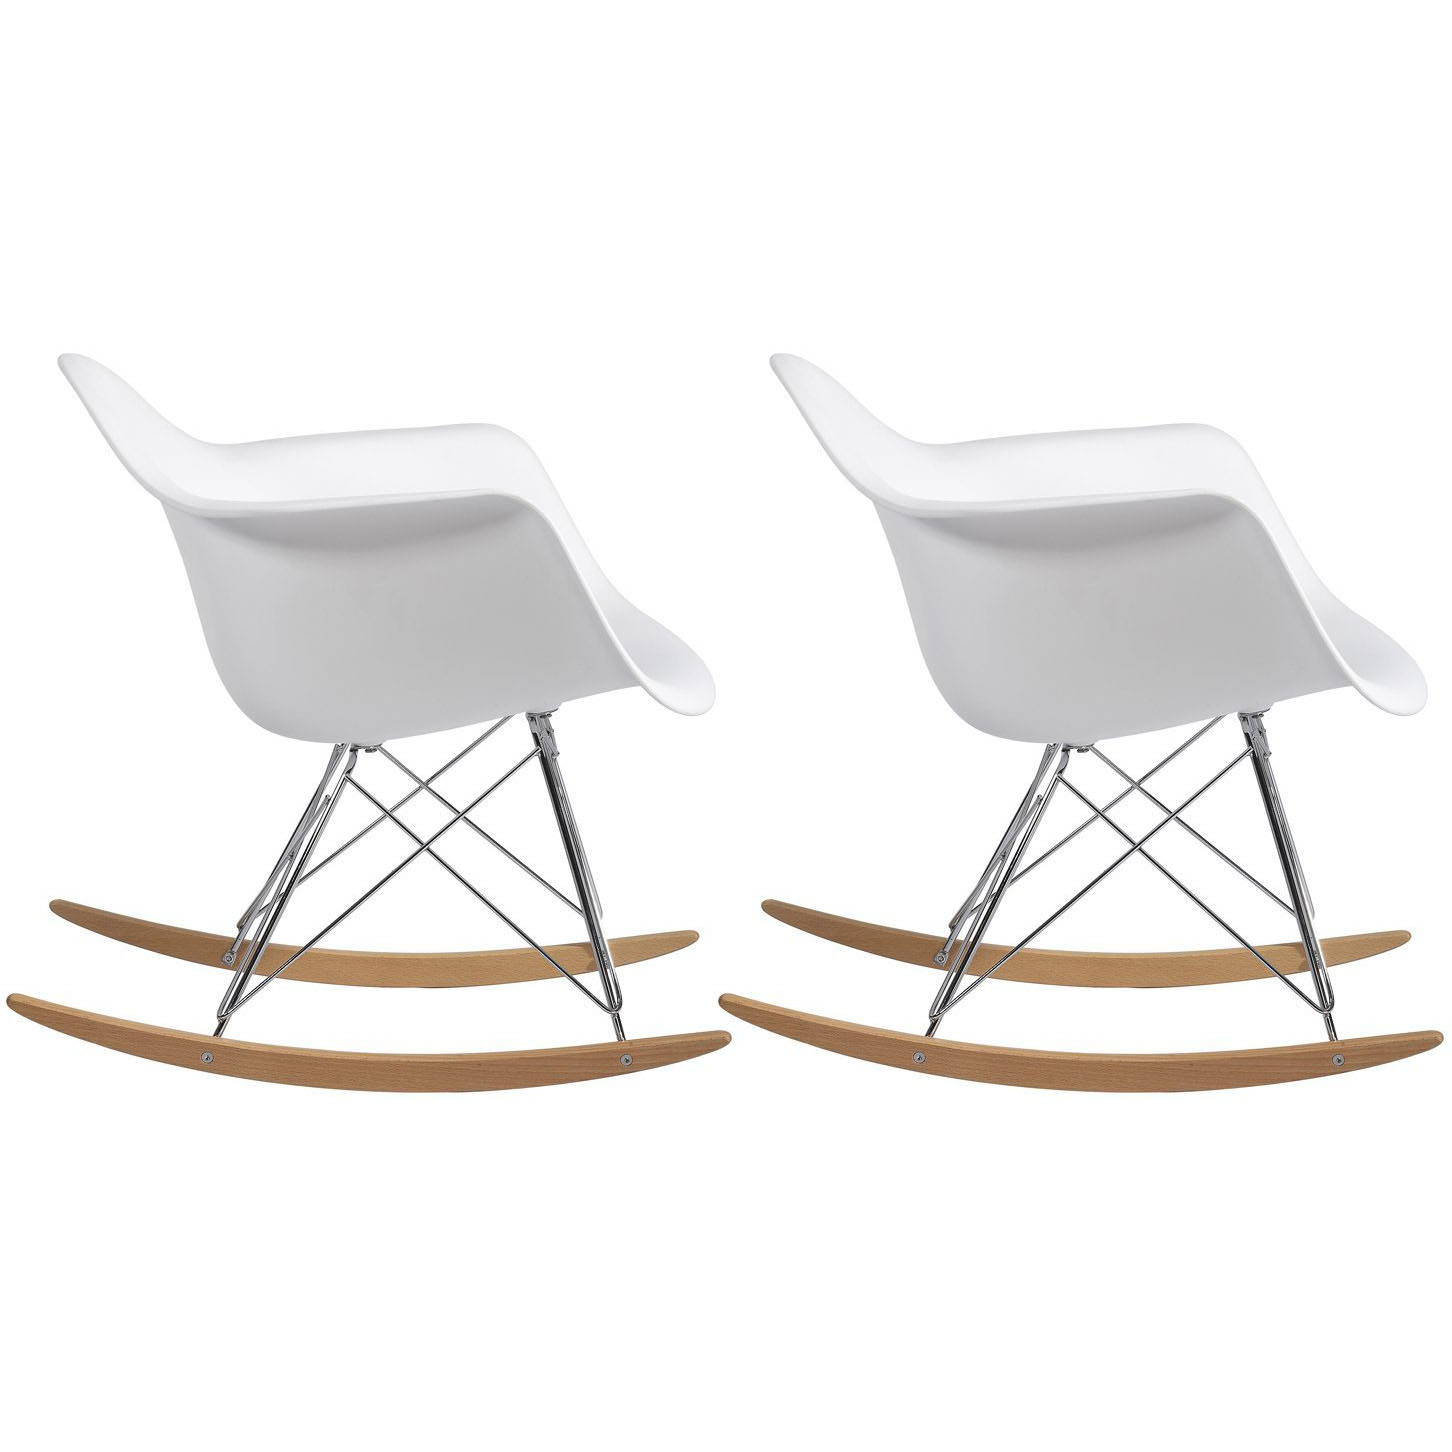 2xhome Set of 2 White Molded Modern Plastic Armchair Contemporary Accent Retro Rocker Chrome Steel Eiffel Base Ash Wood... by 2xhome